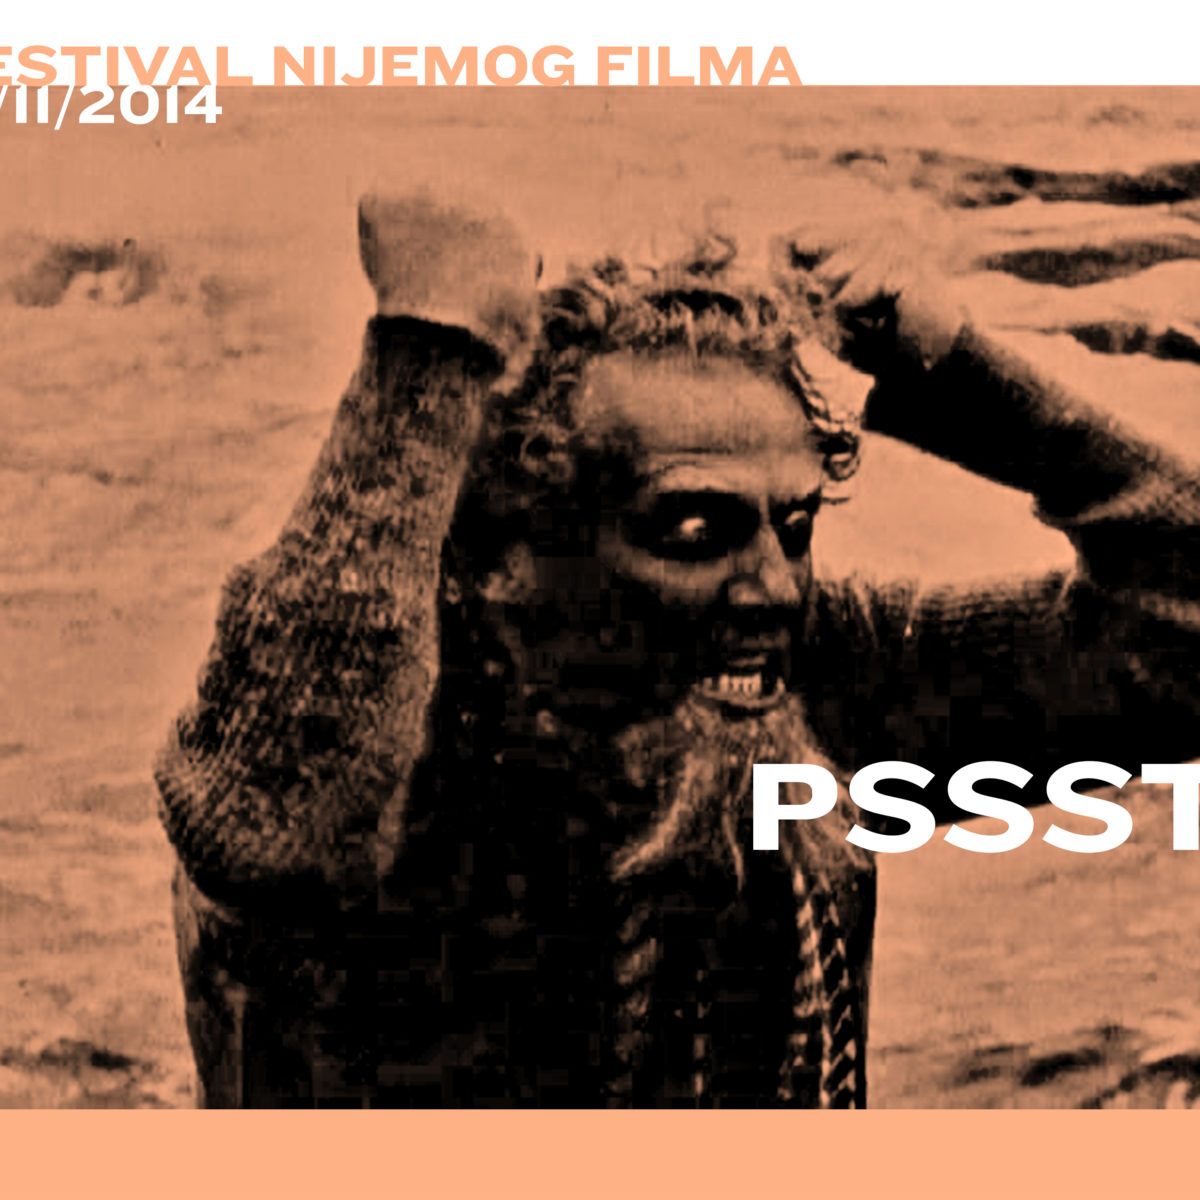 8. PSSST! Festival nijemog filma